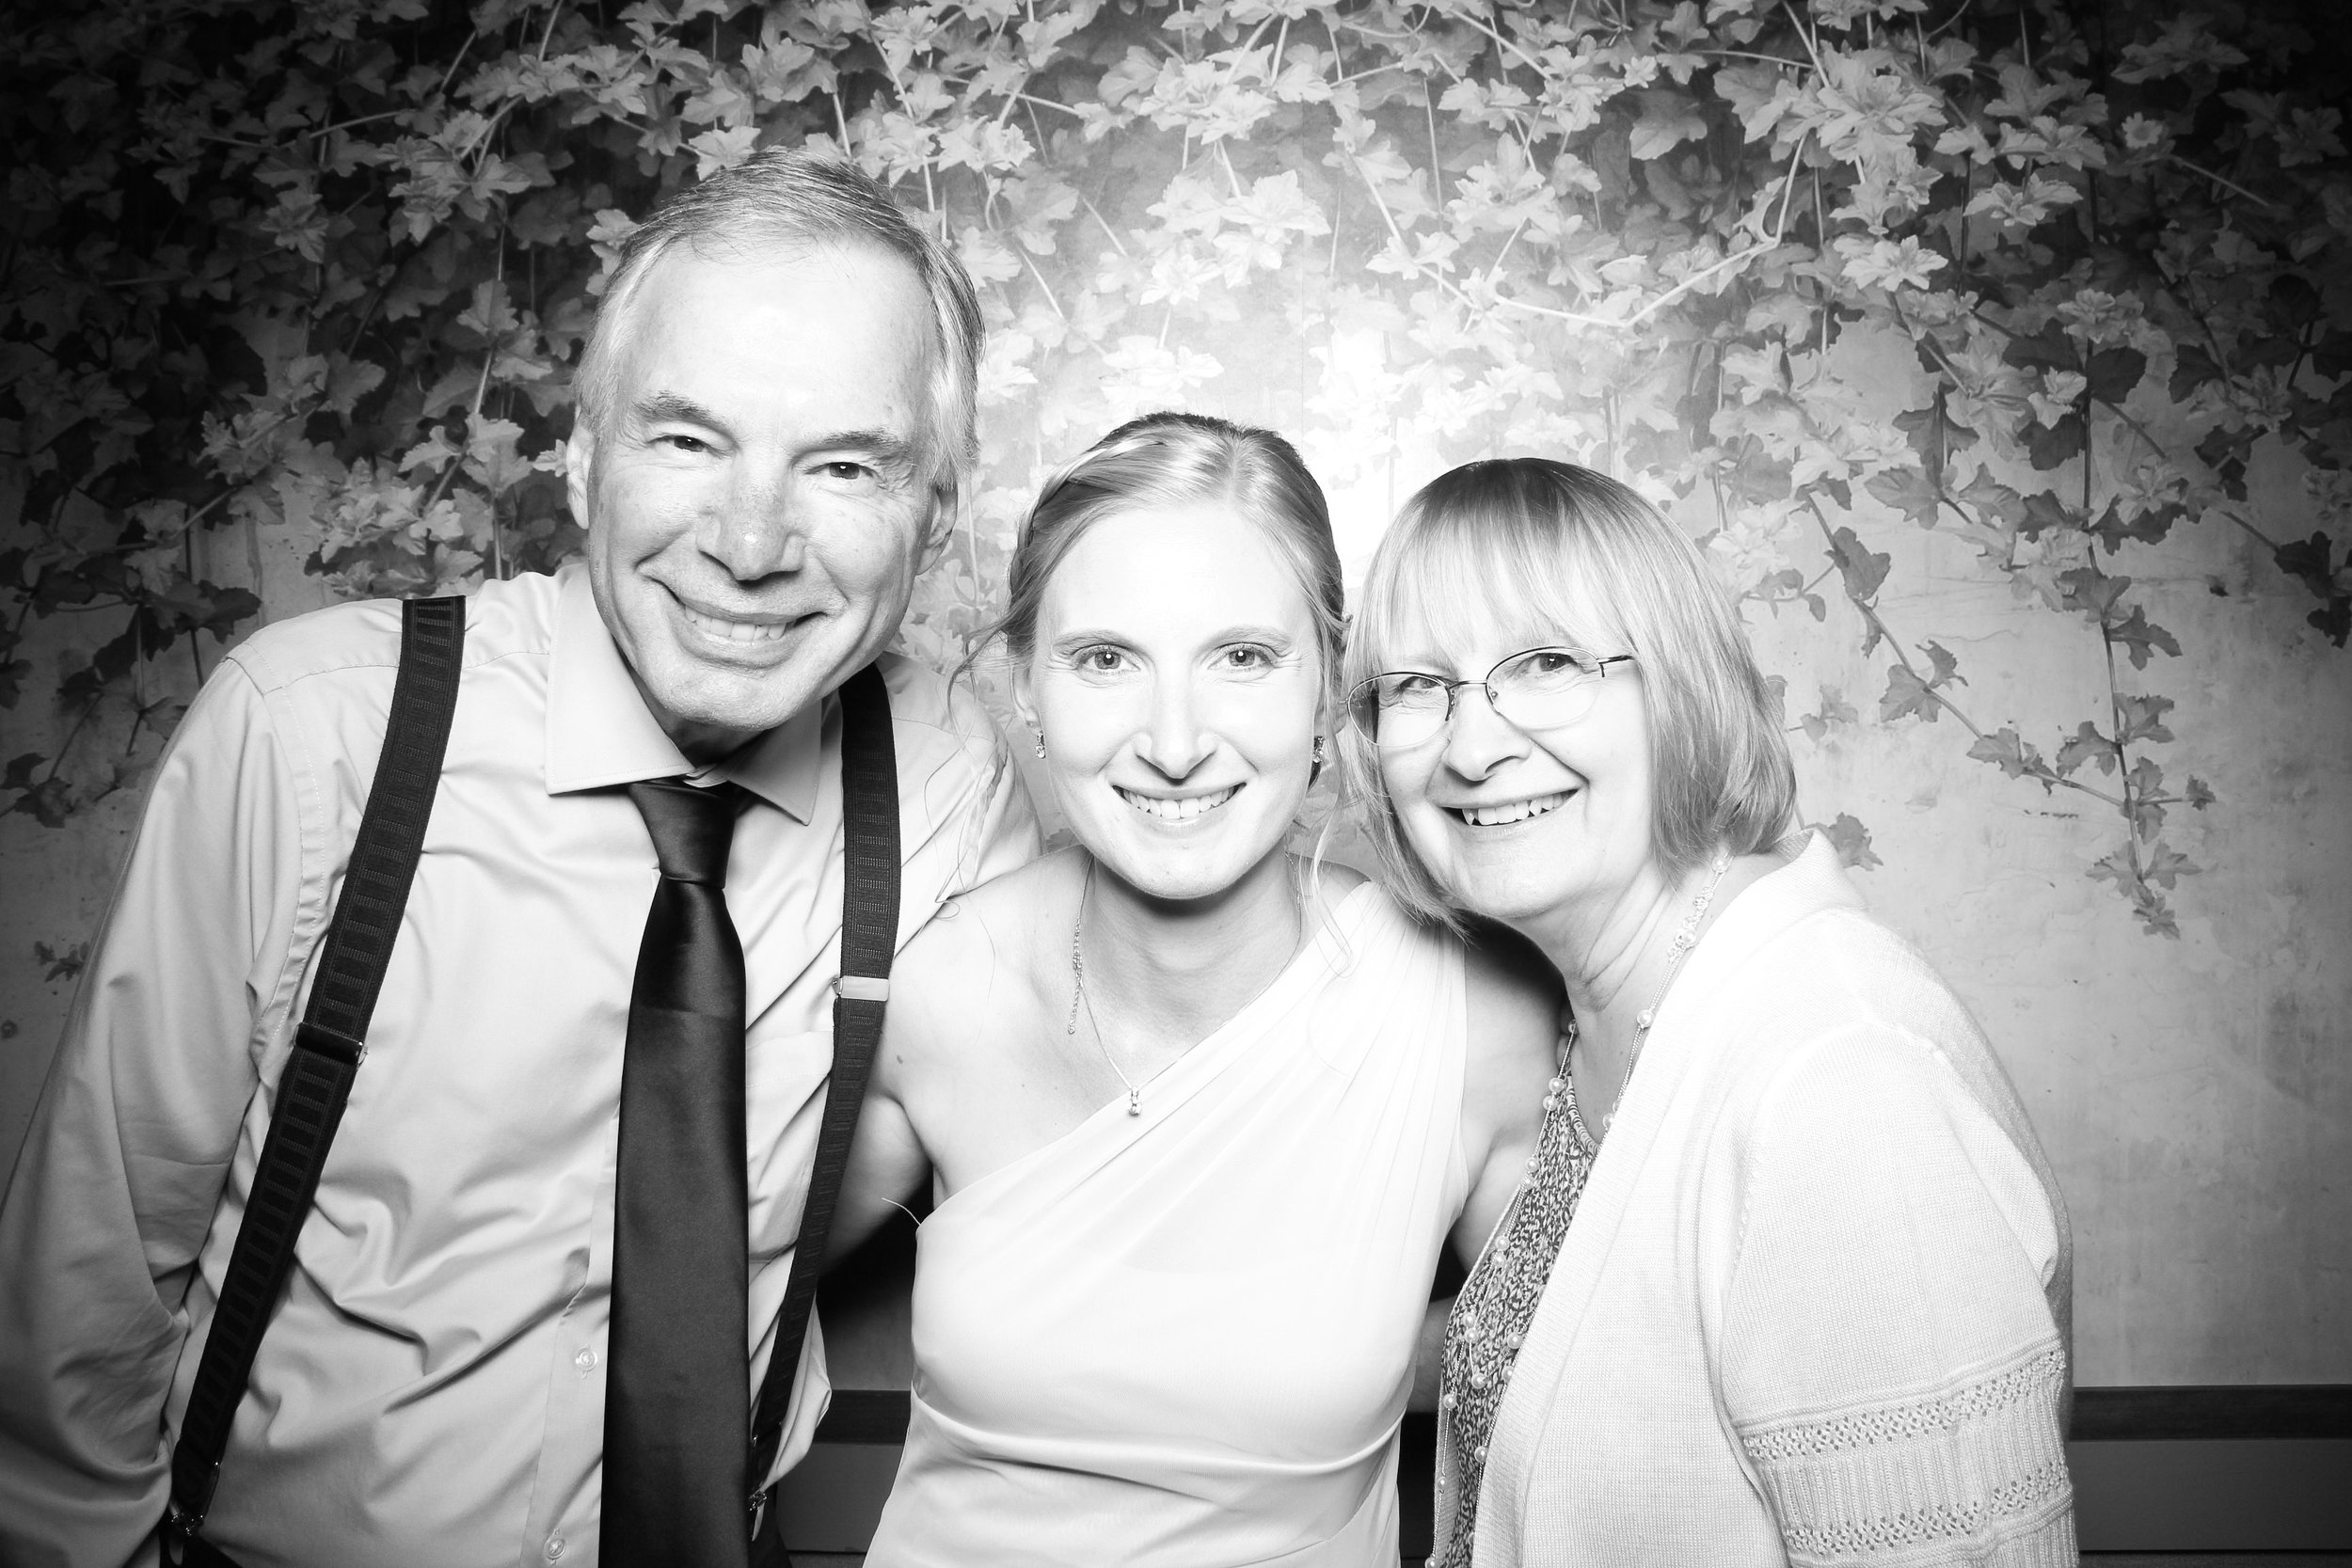 Randall_Oaks_Country_Club_Wedding_West_Dundee_Photo_Booth_16.jpg